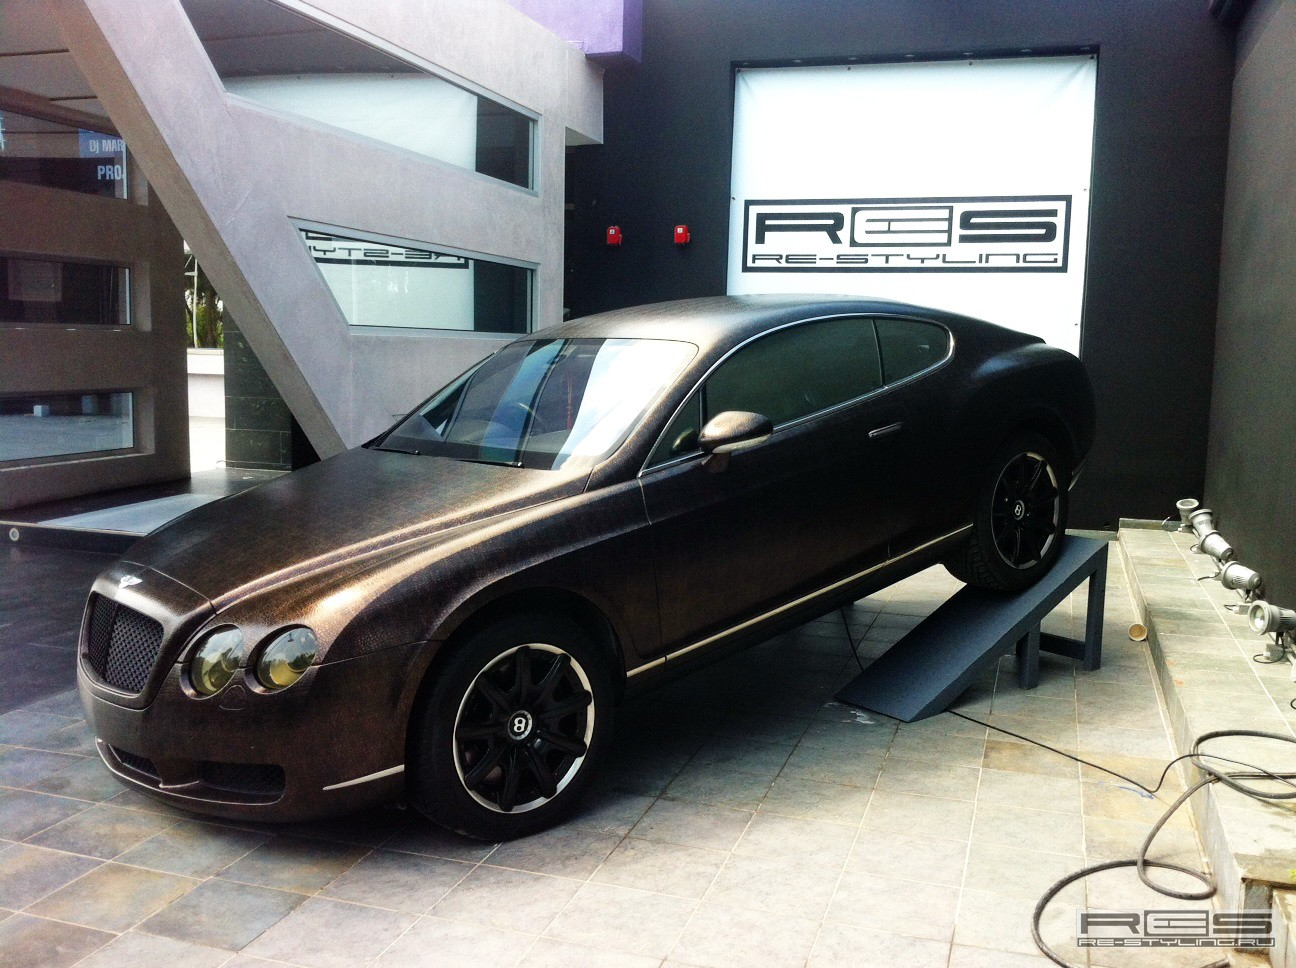 Brass to brown bentley continental gt with an alligator wrap from brass to brown bentley continental gt with an alligator wrap vanachro Choice Image